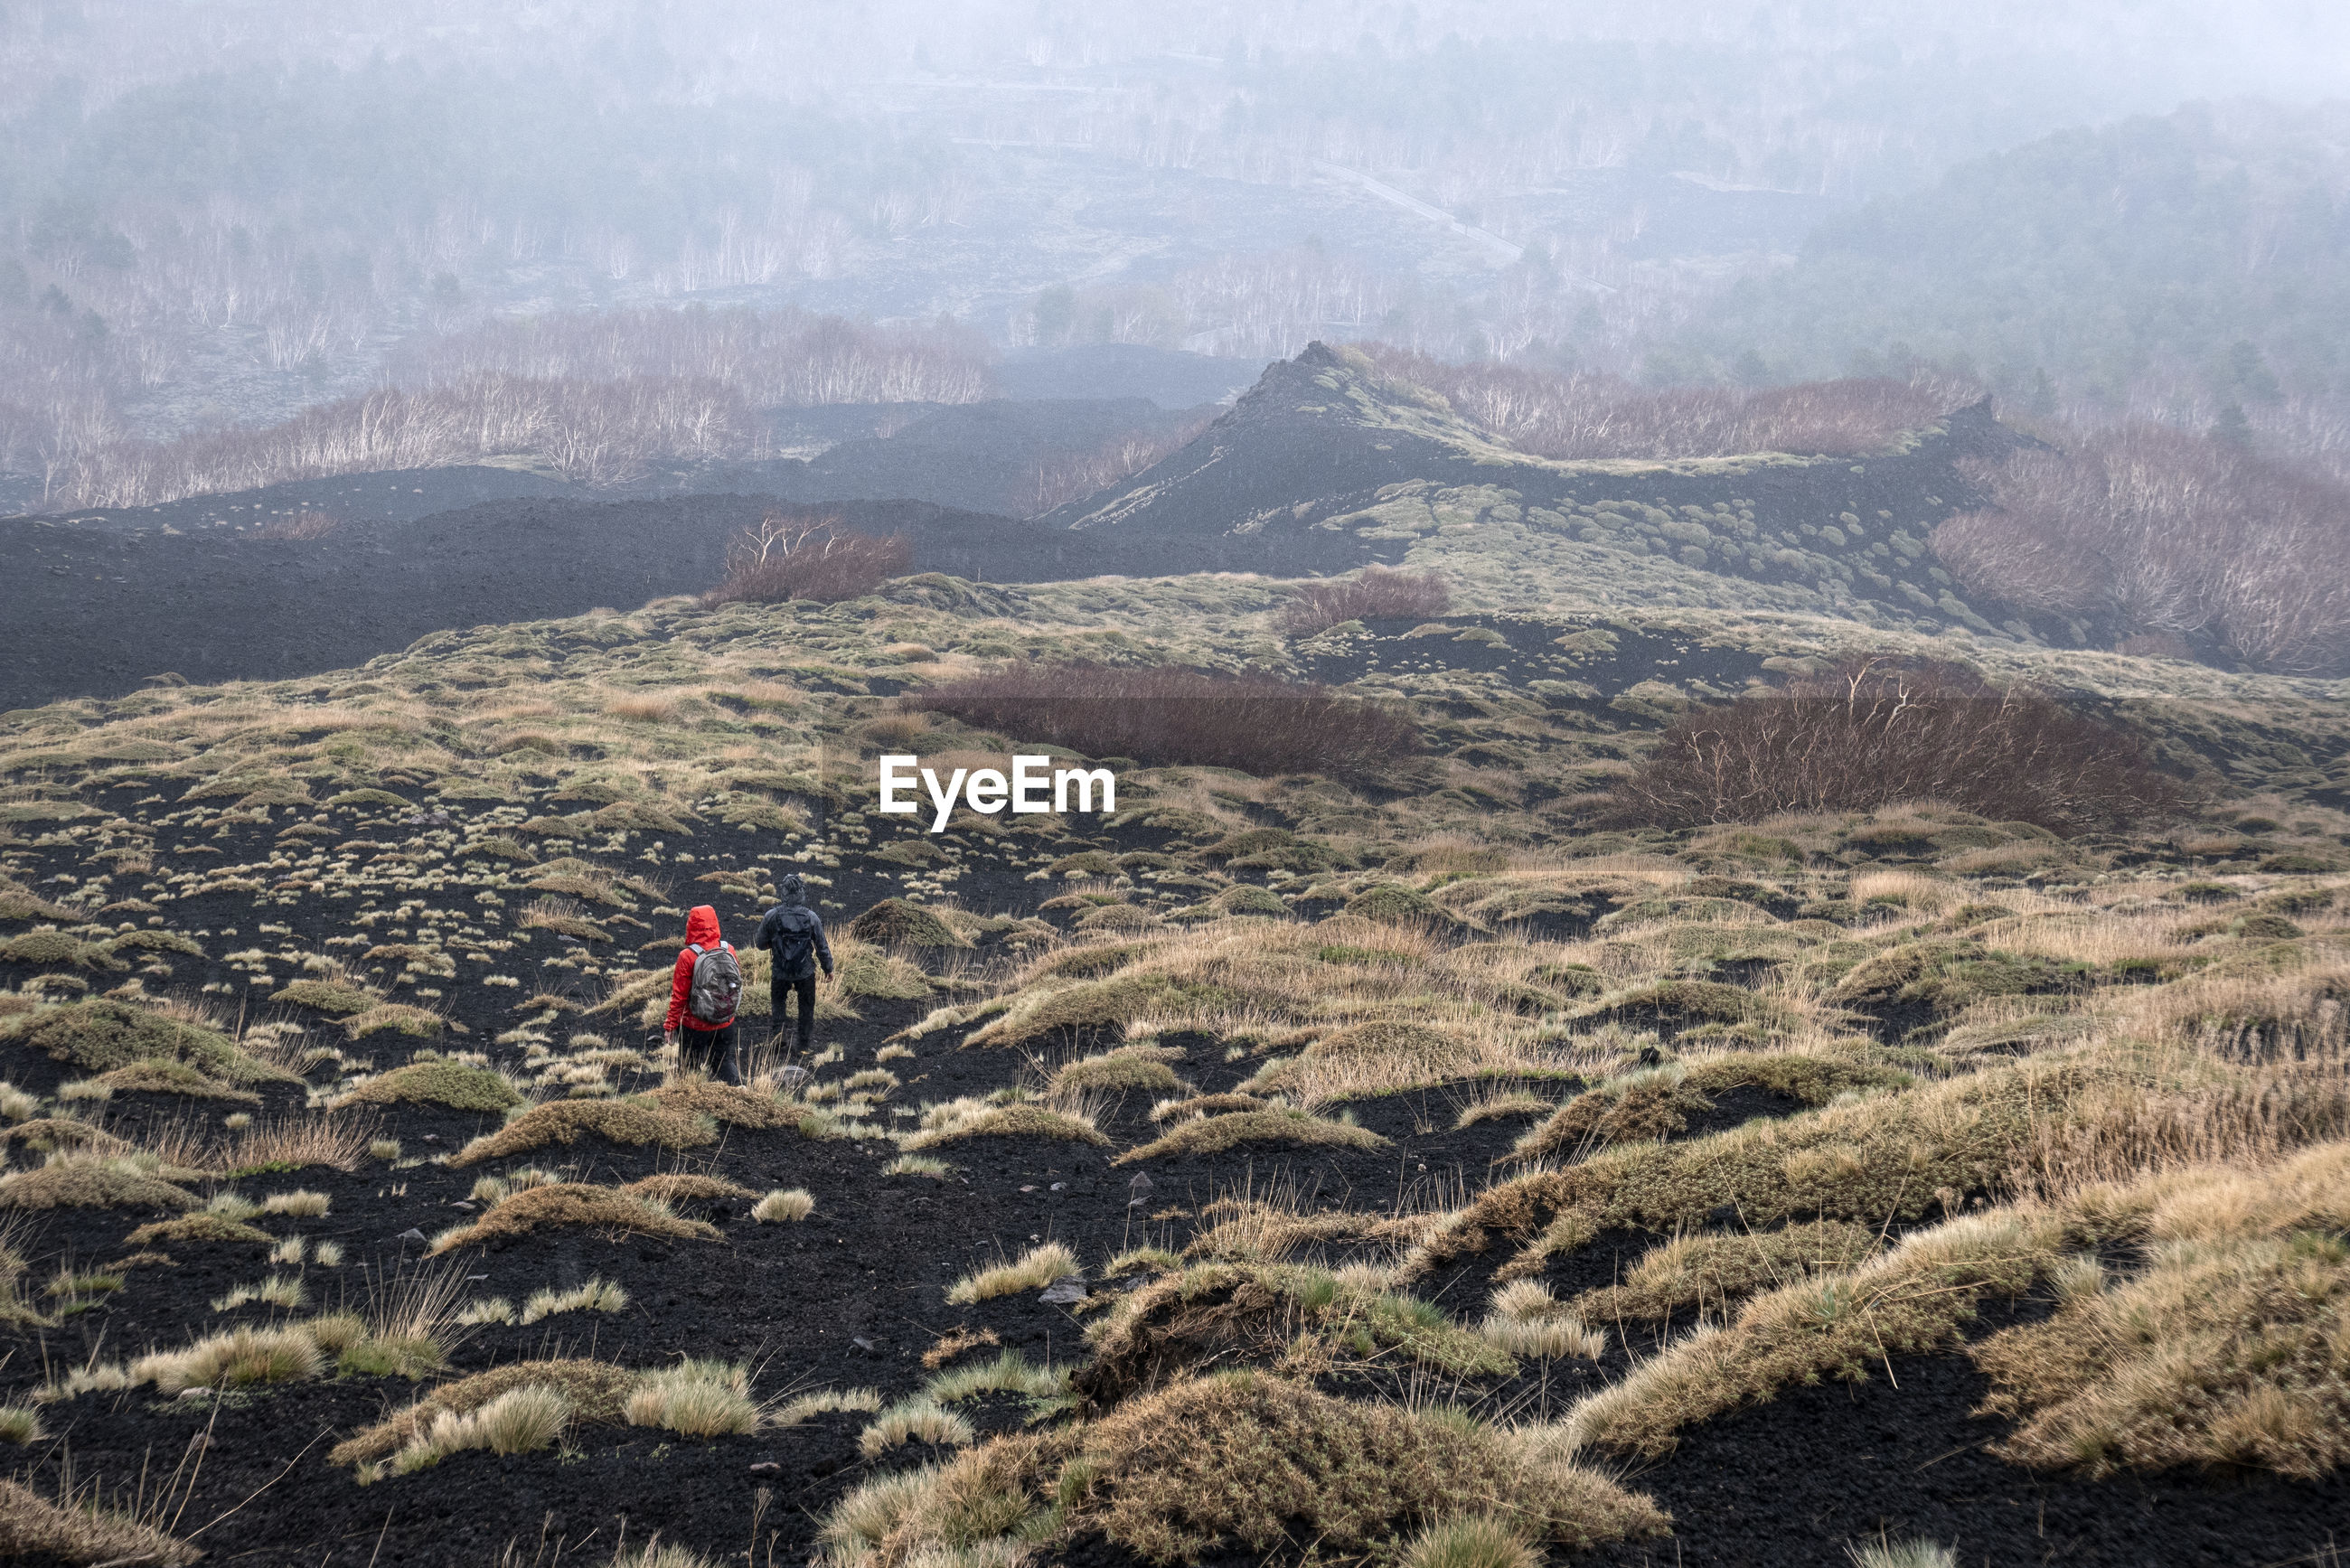 PANORAMIC VIEW OF PEOPLE ON LAND